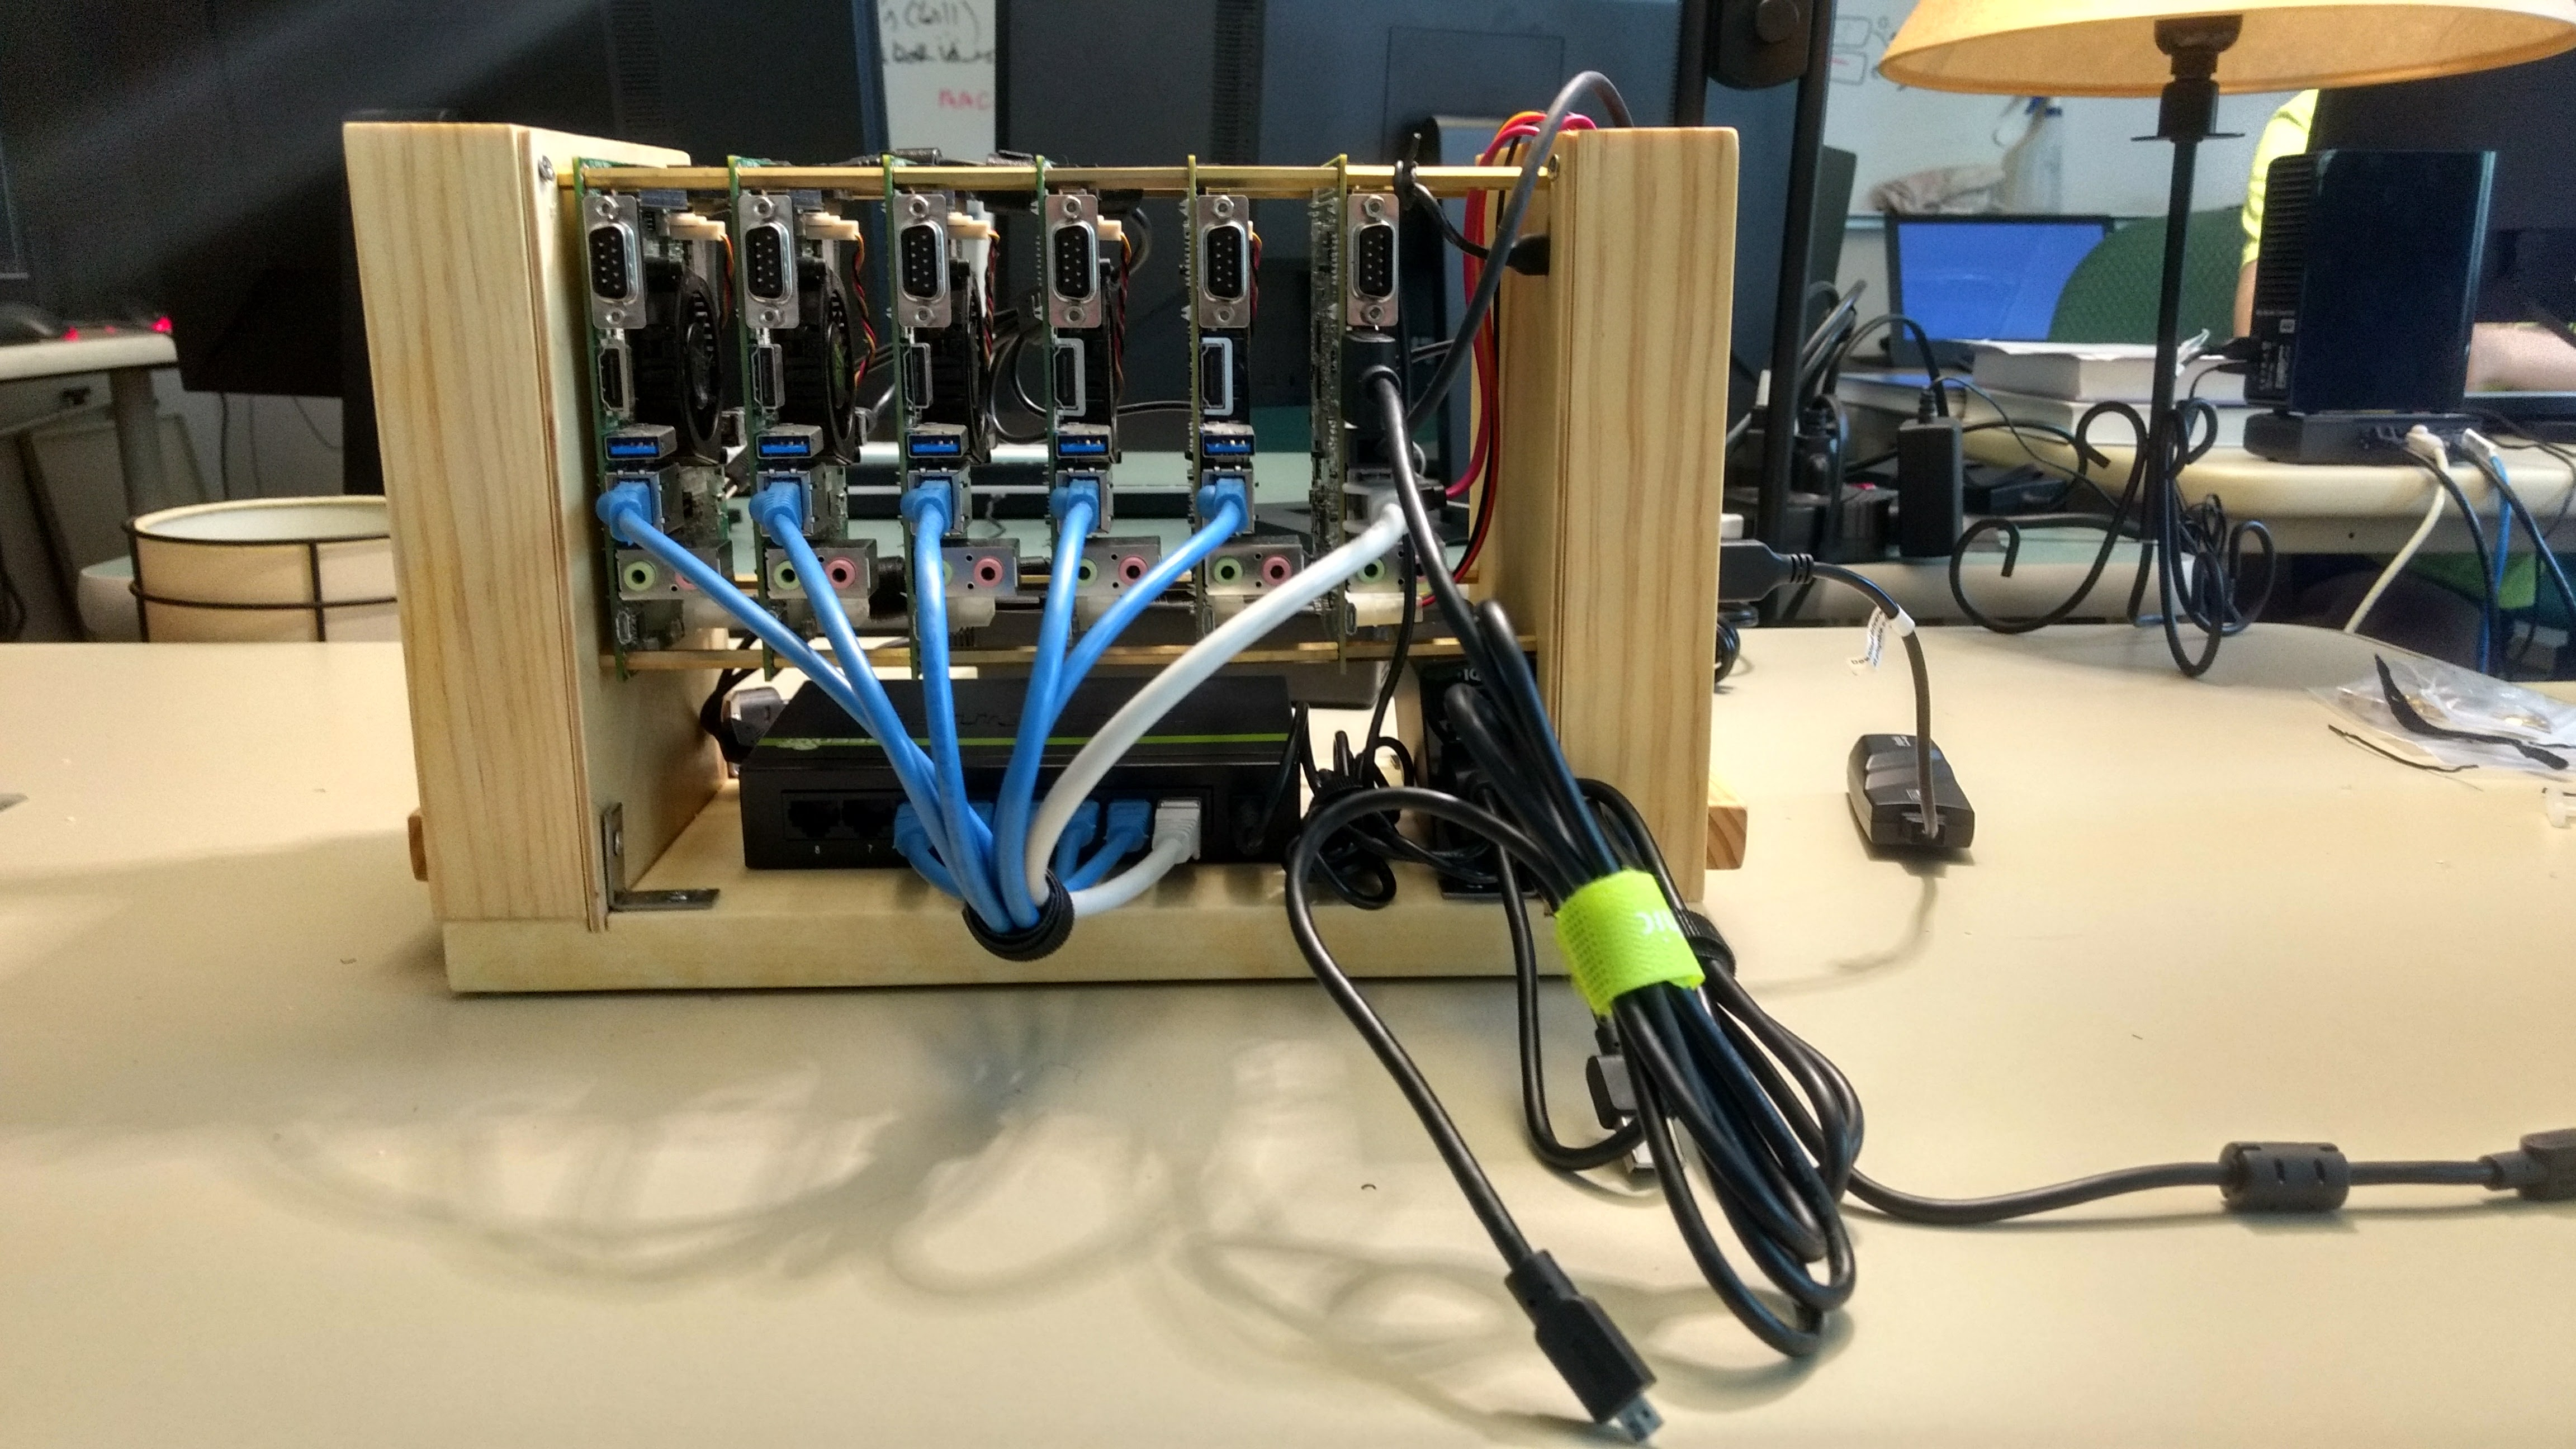 Building a Nvidia Jetson TK1 Cluster — Building a Raspberry Pi Cluster